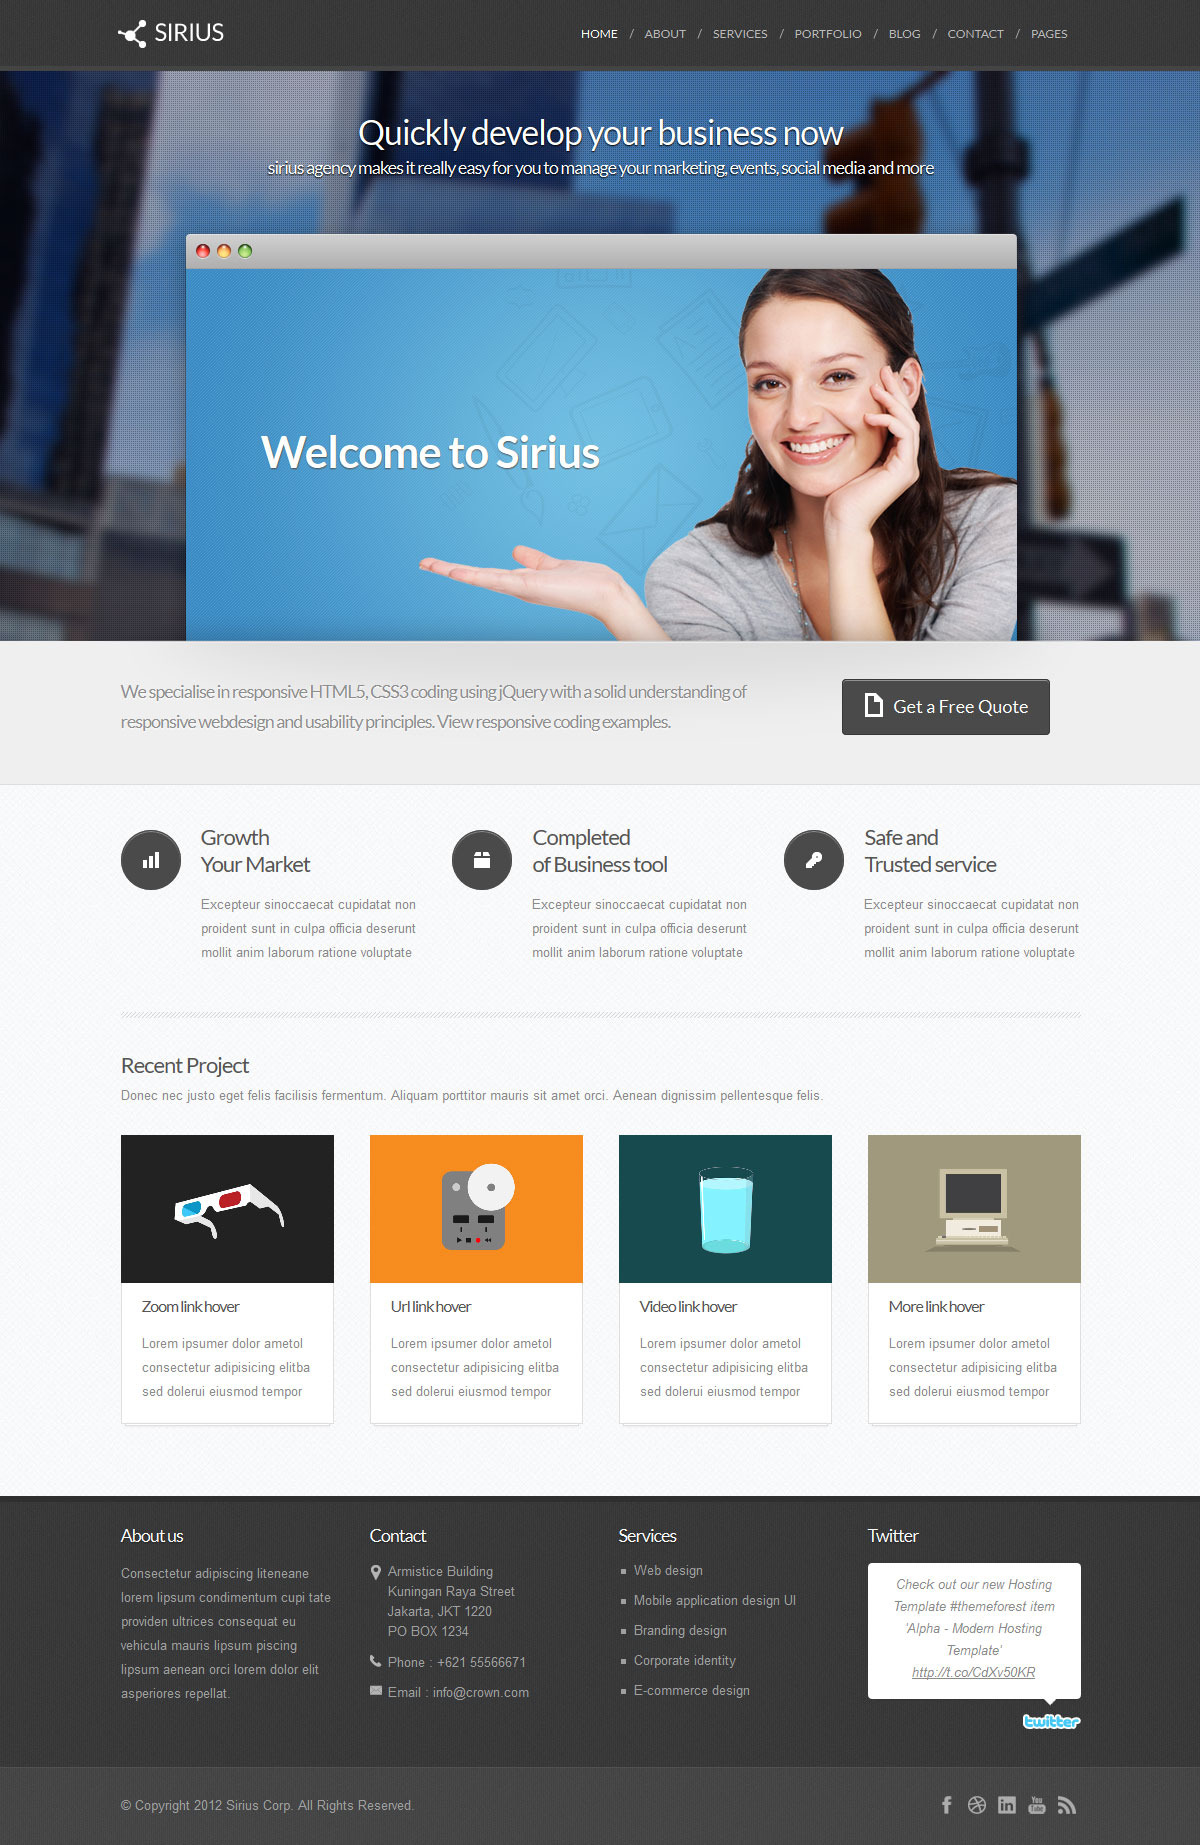 Sirius - Modern Minimalist Wordpress Theme